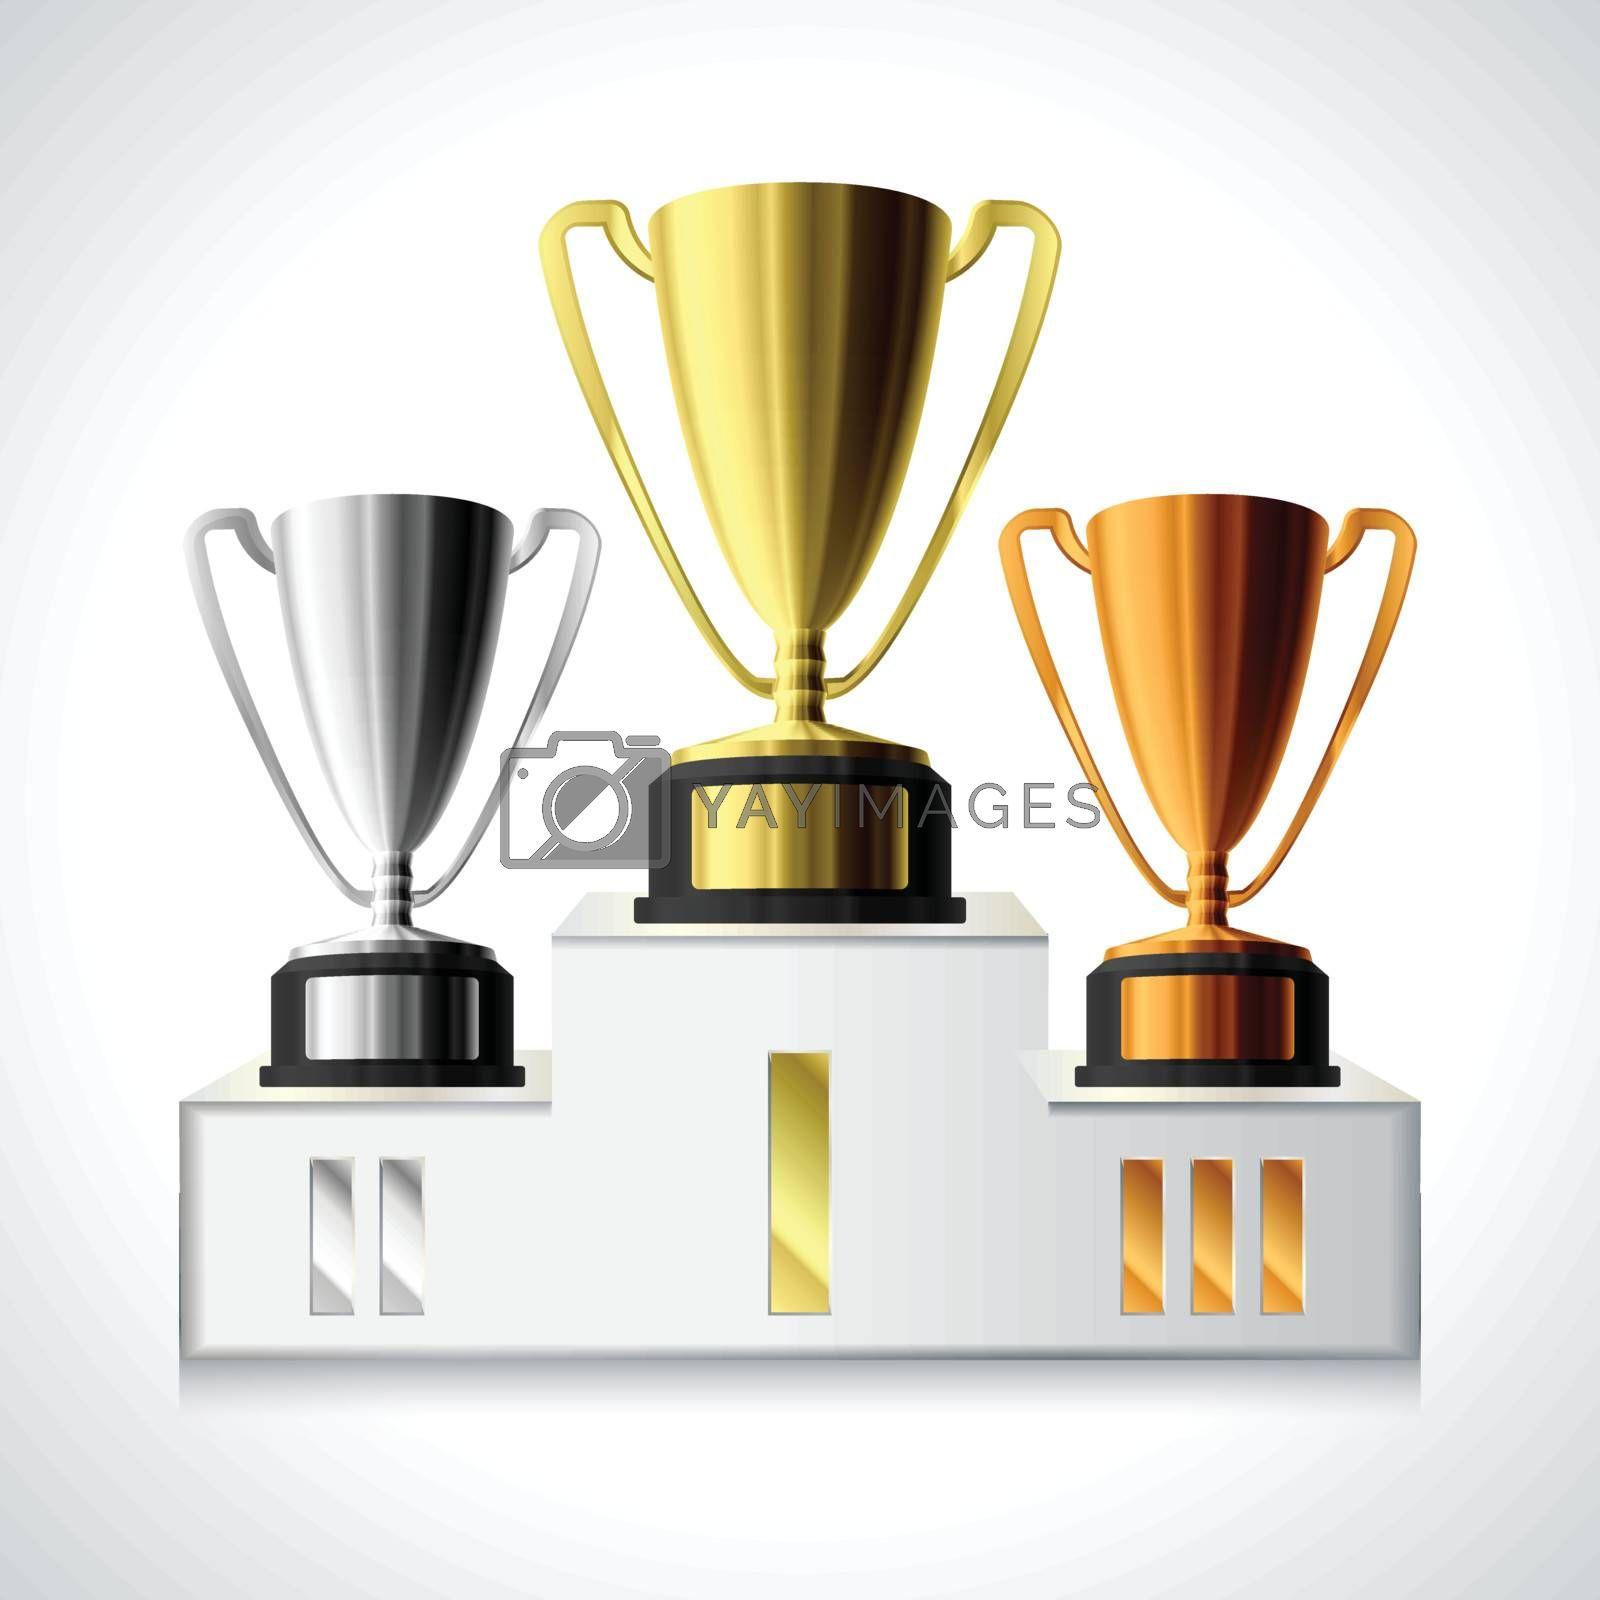 Gold, silver and bronze trophy cups on pedestal isolated